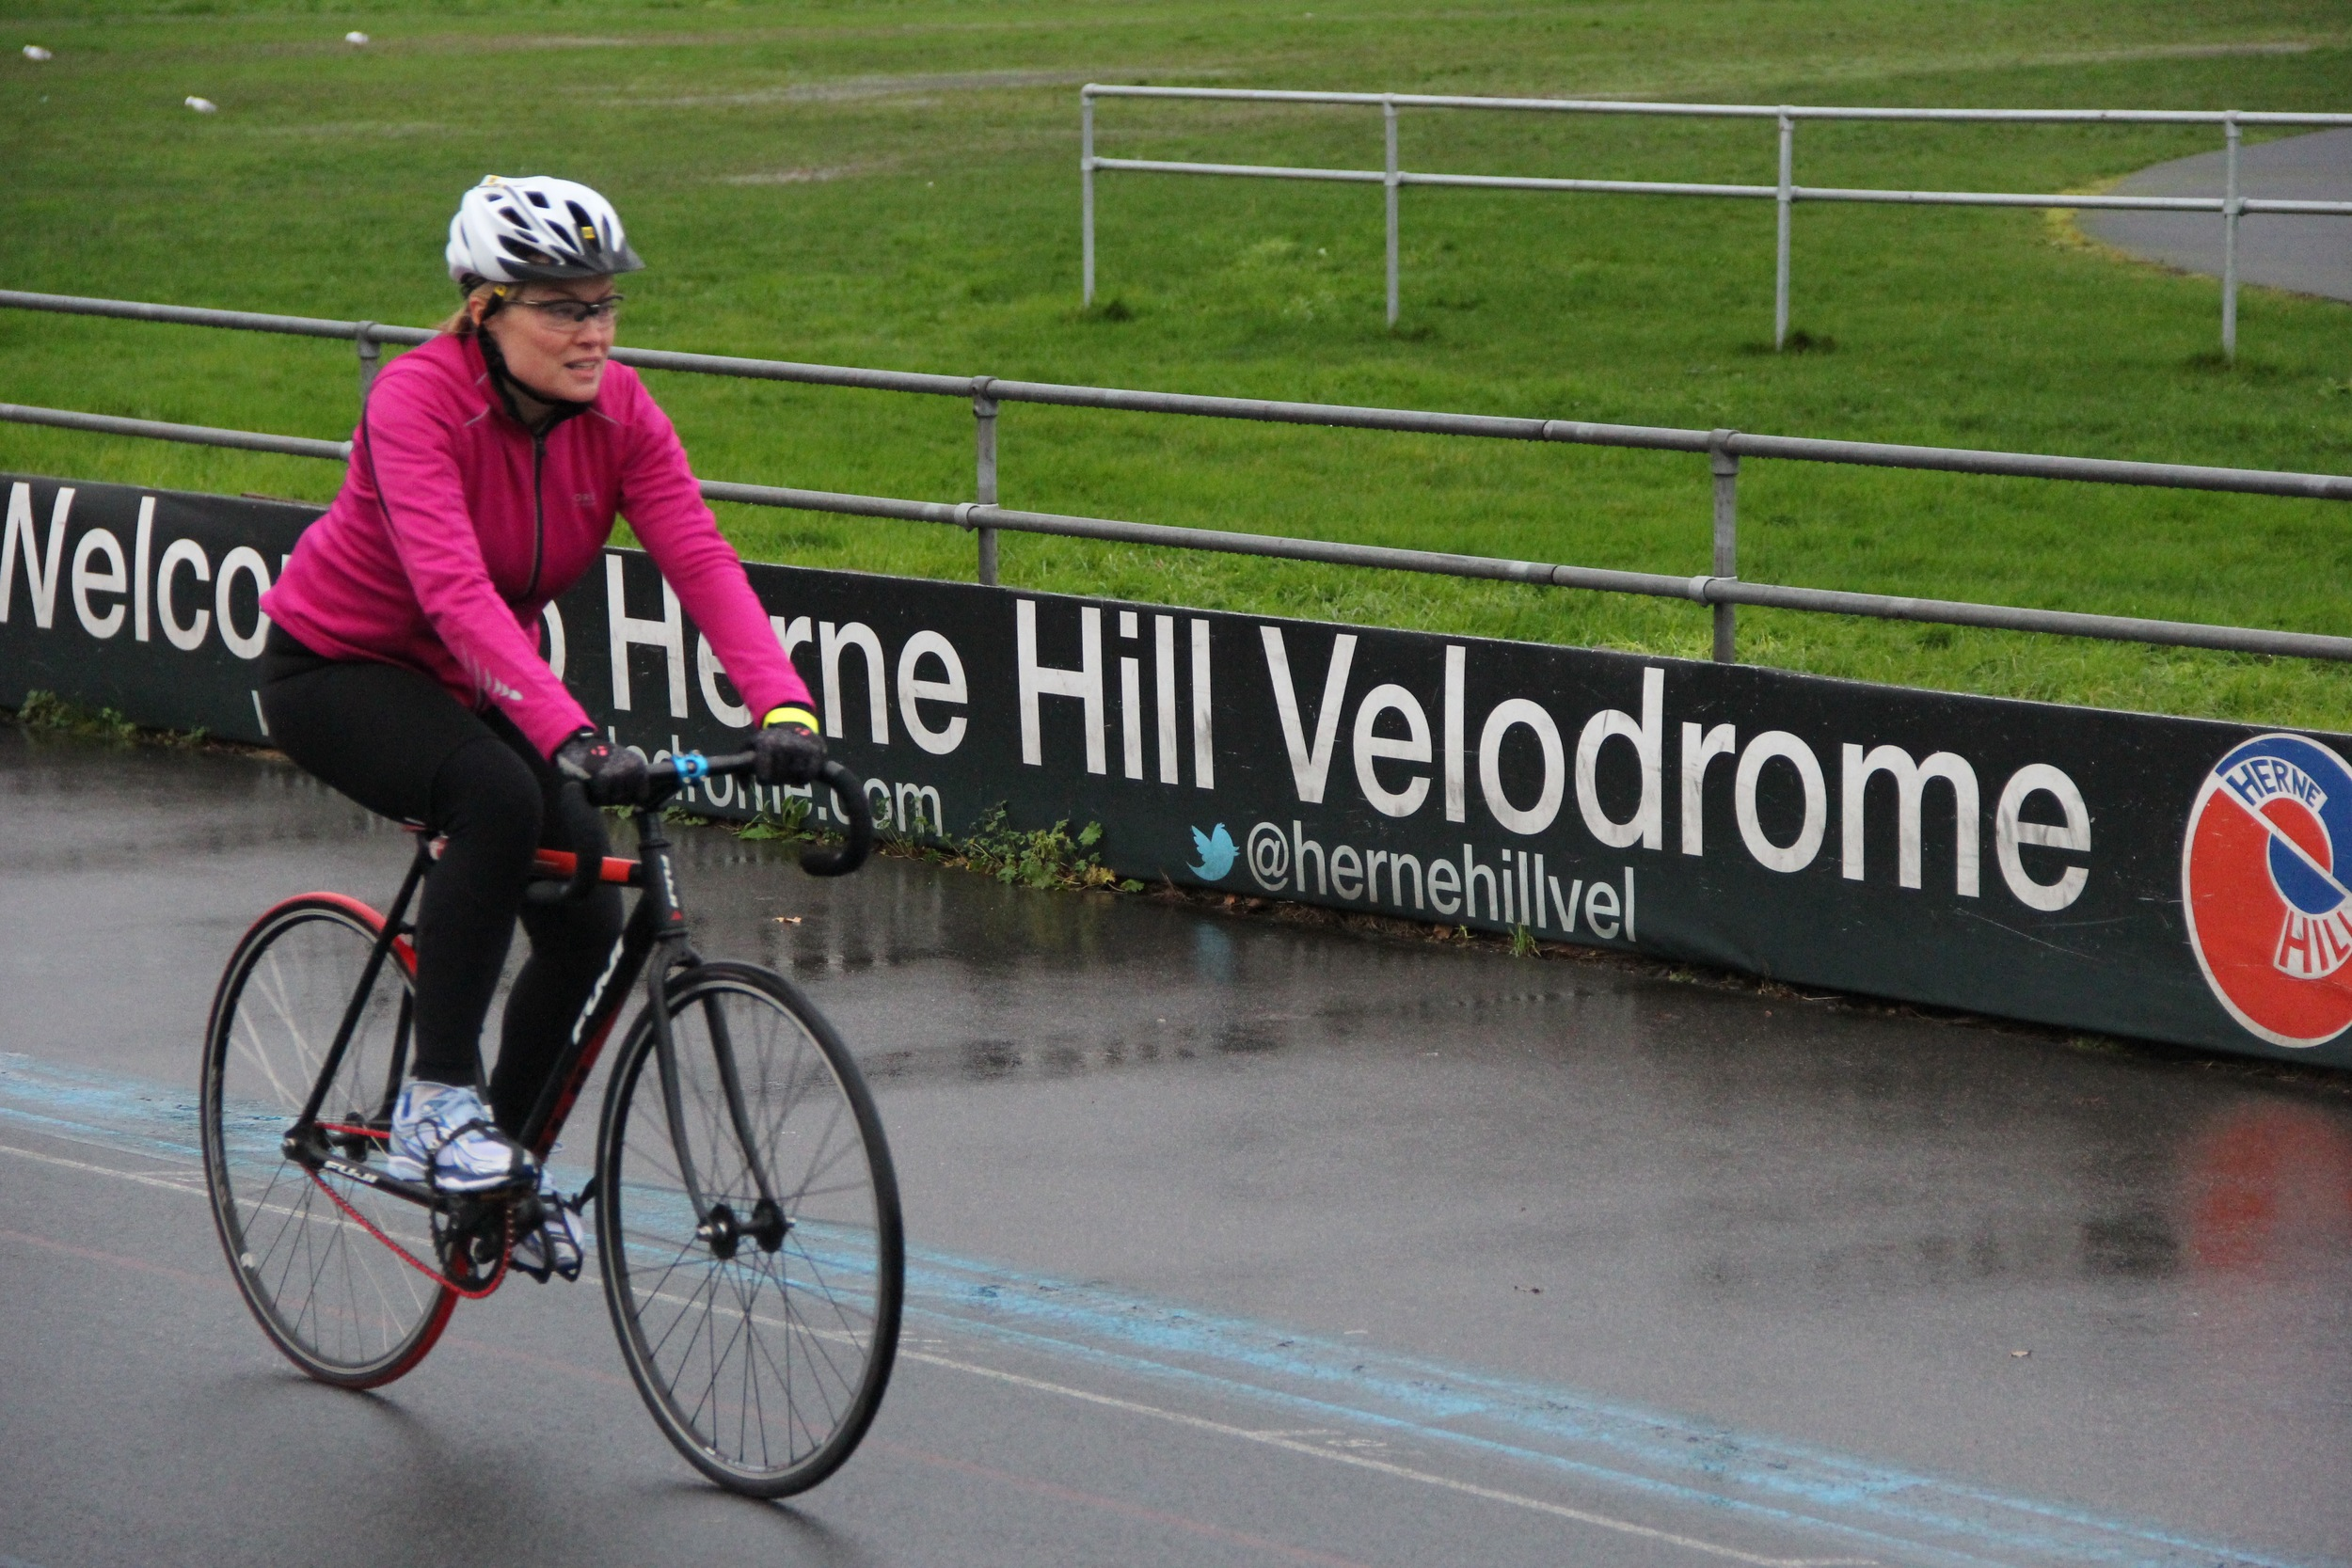 Welcome to Herne Hill Velodrome